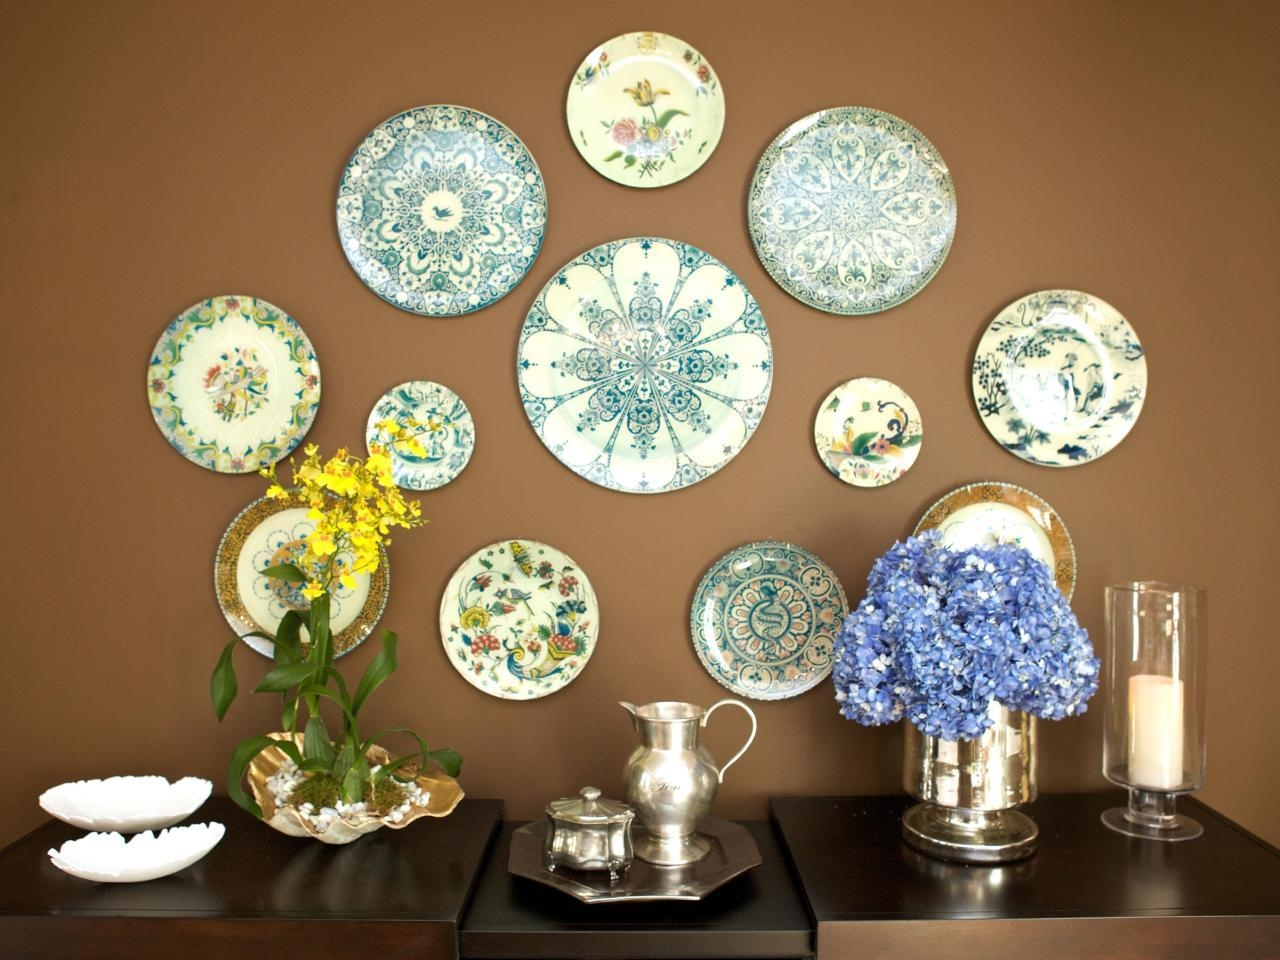 15 Ways To Dress Up Your Dining Room Walls | Hgtv's Decorating For Wall Art For Dining Room (View 16 of 20)